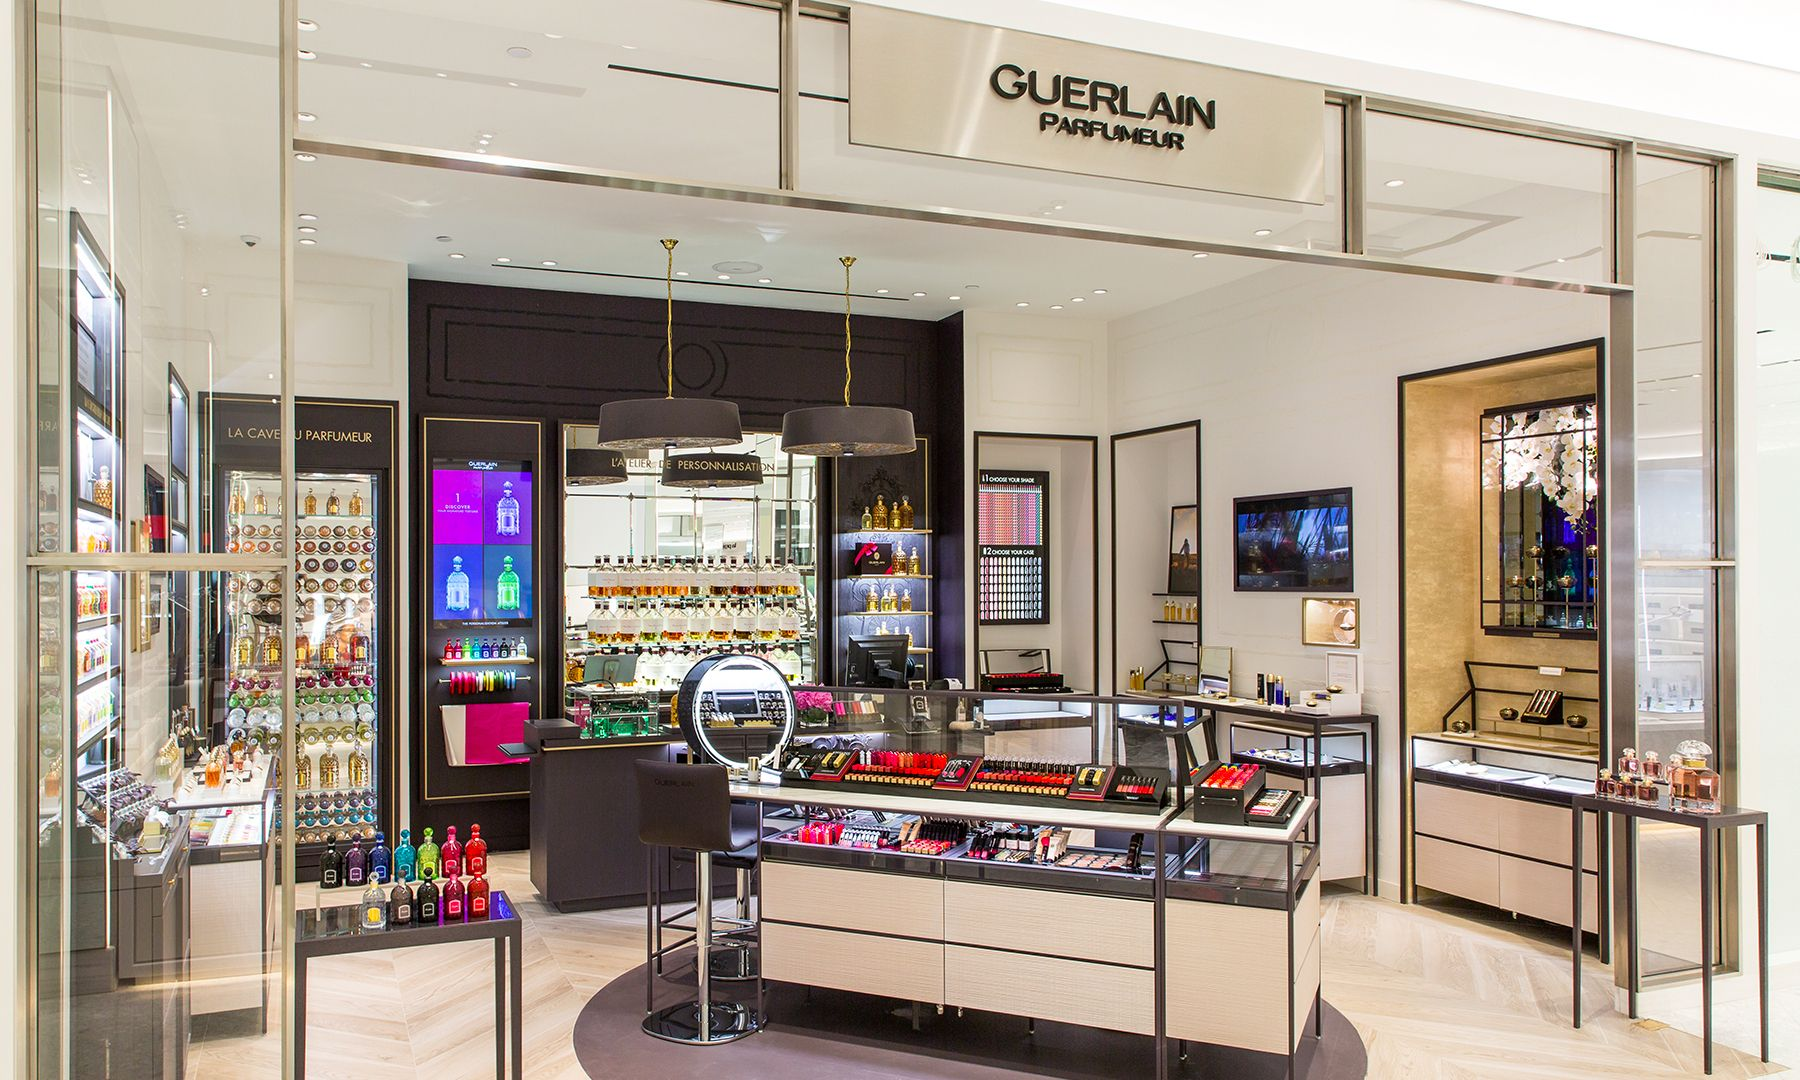 ac09afd7c56 Saks Fifth Avenue Opens New Beauty Floor - DuJour